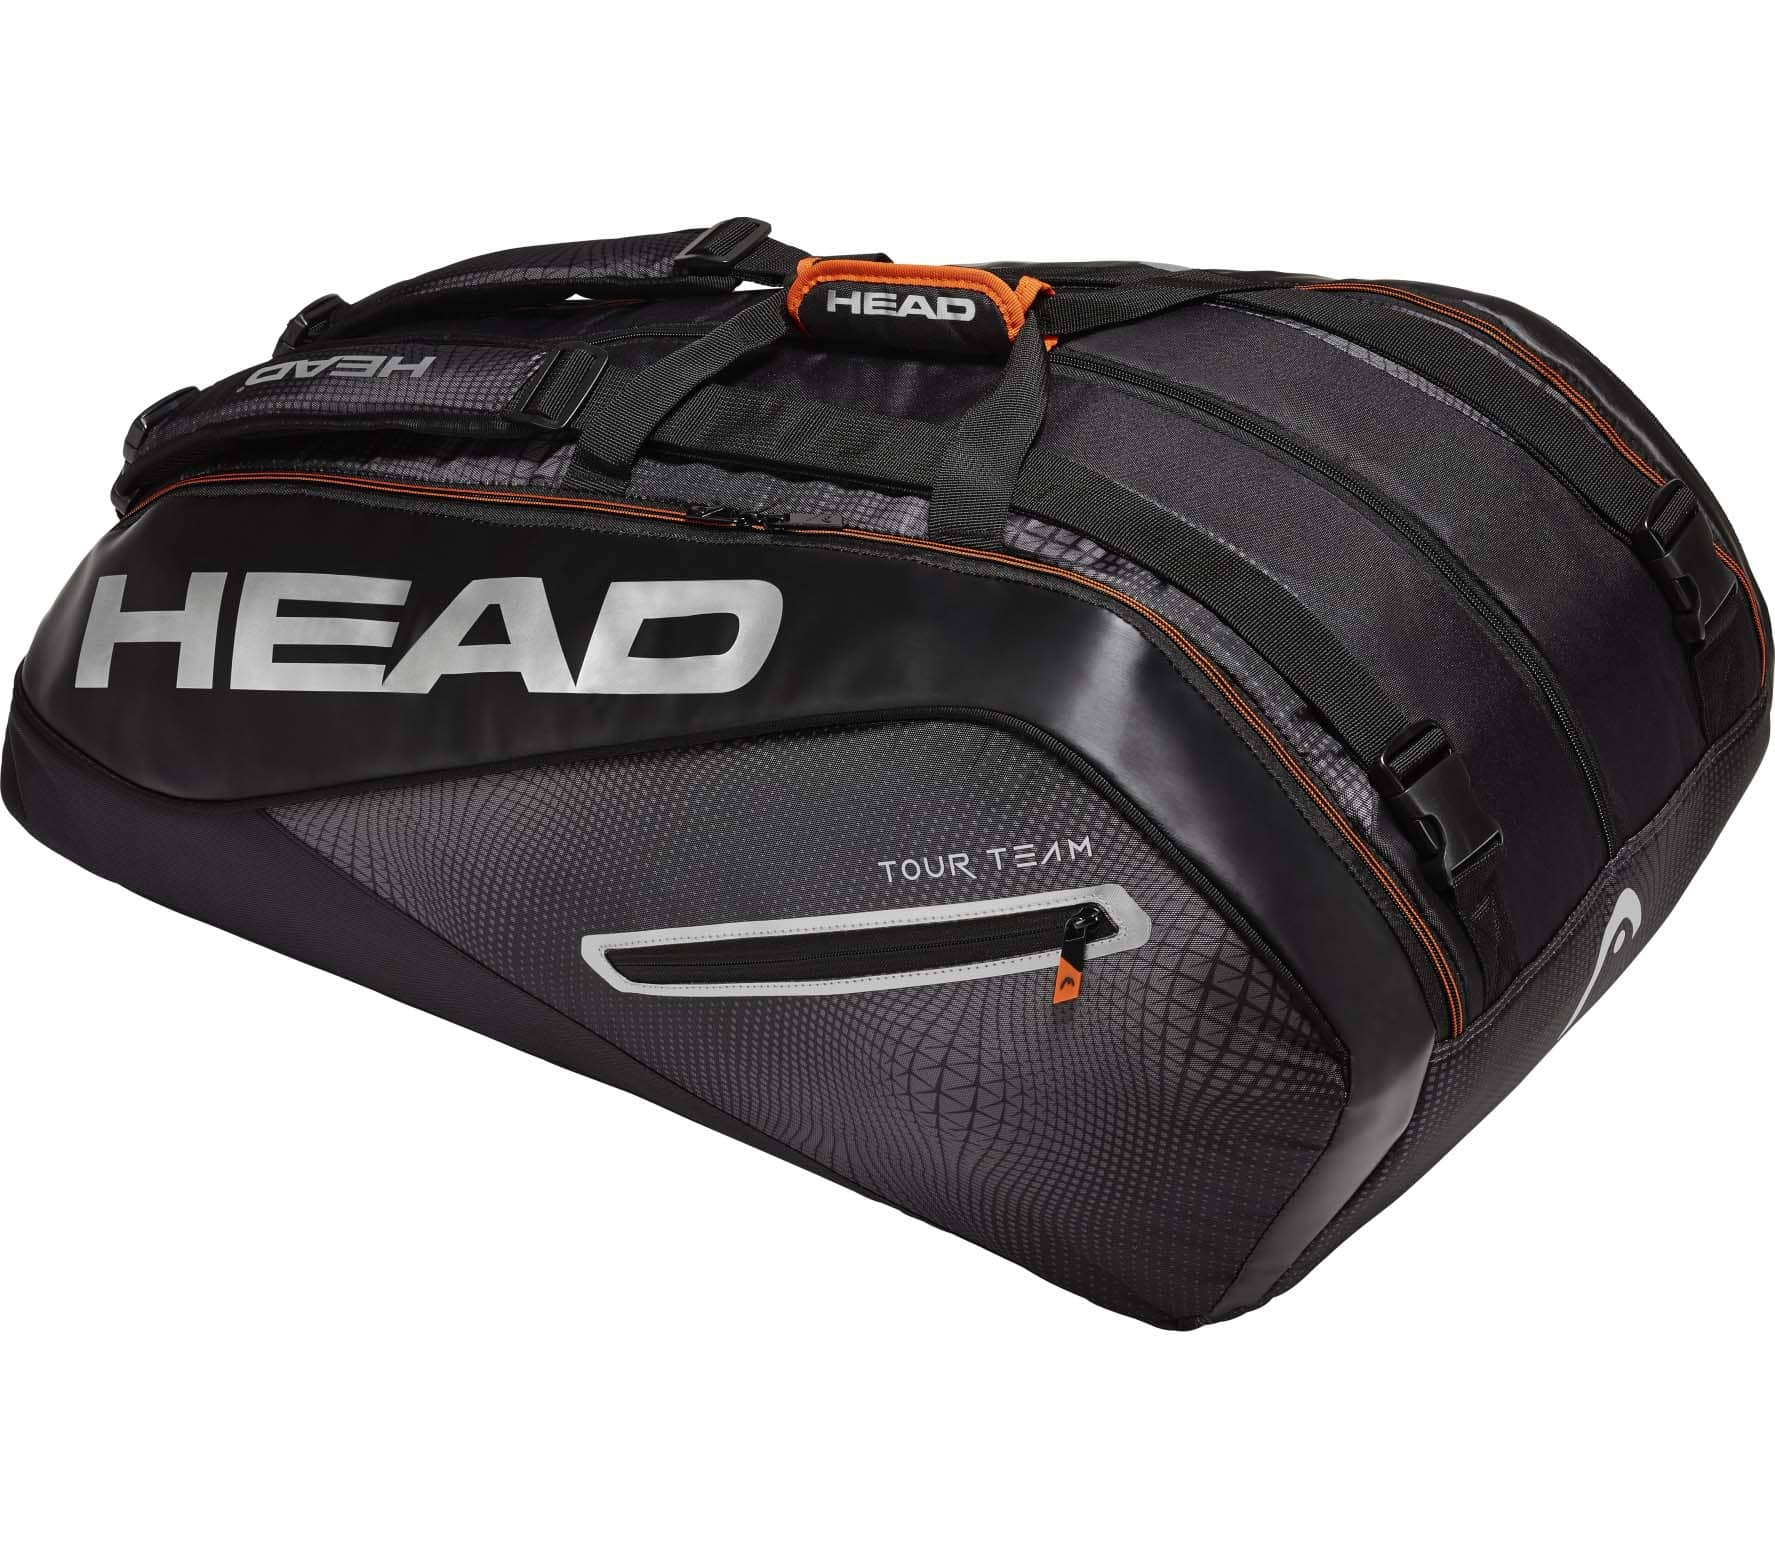 Head - Tour Team 12R Monstercombi tennis bag (black)